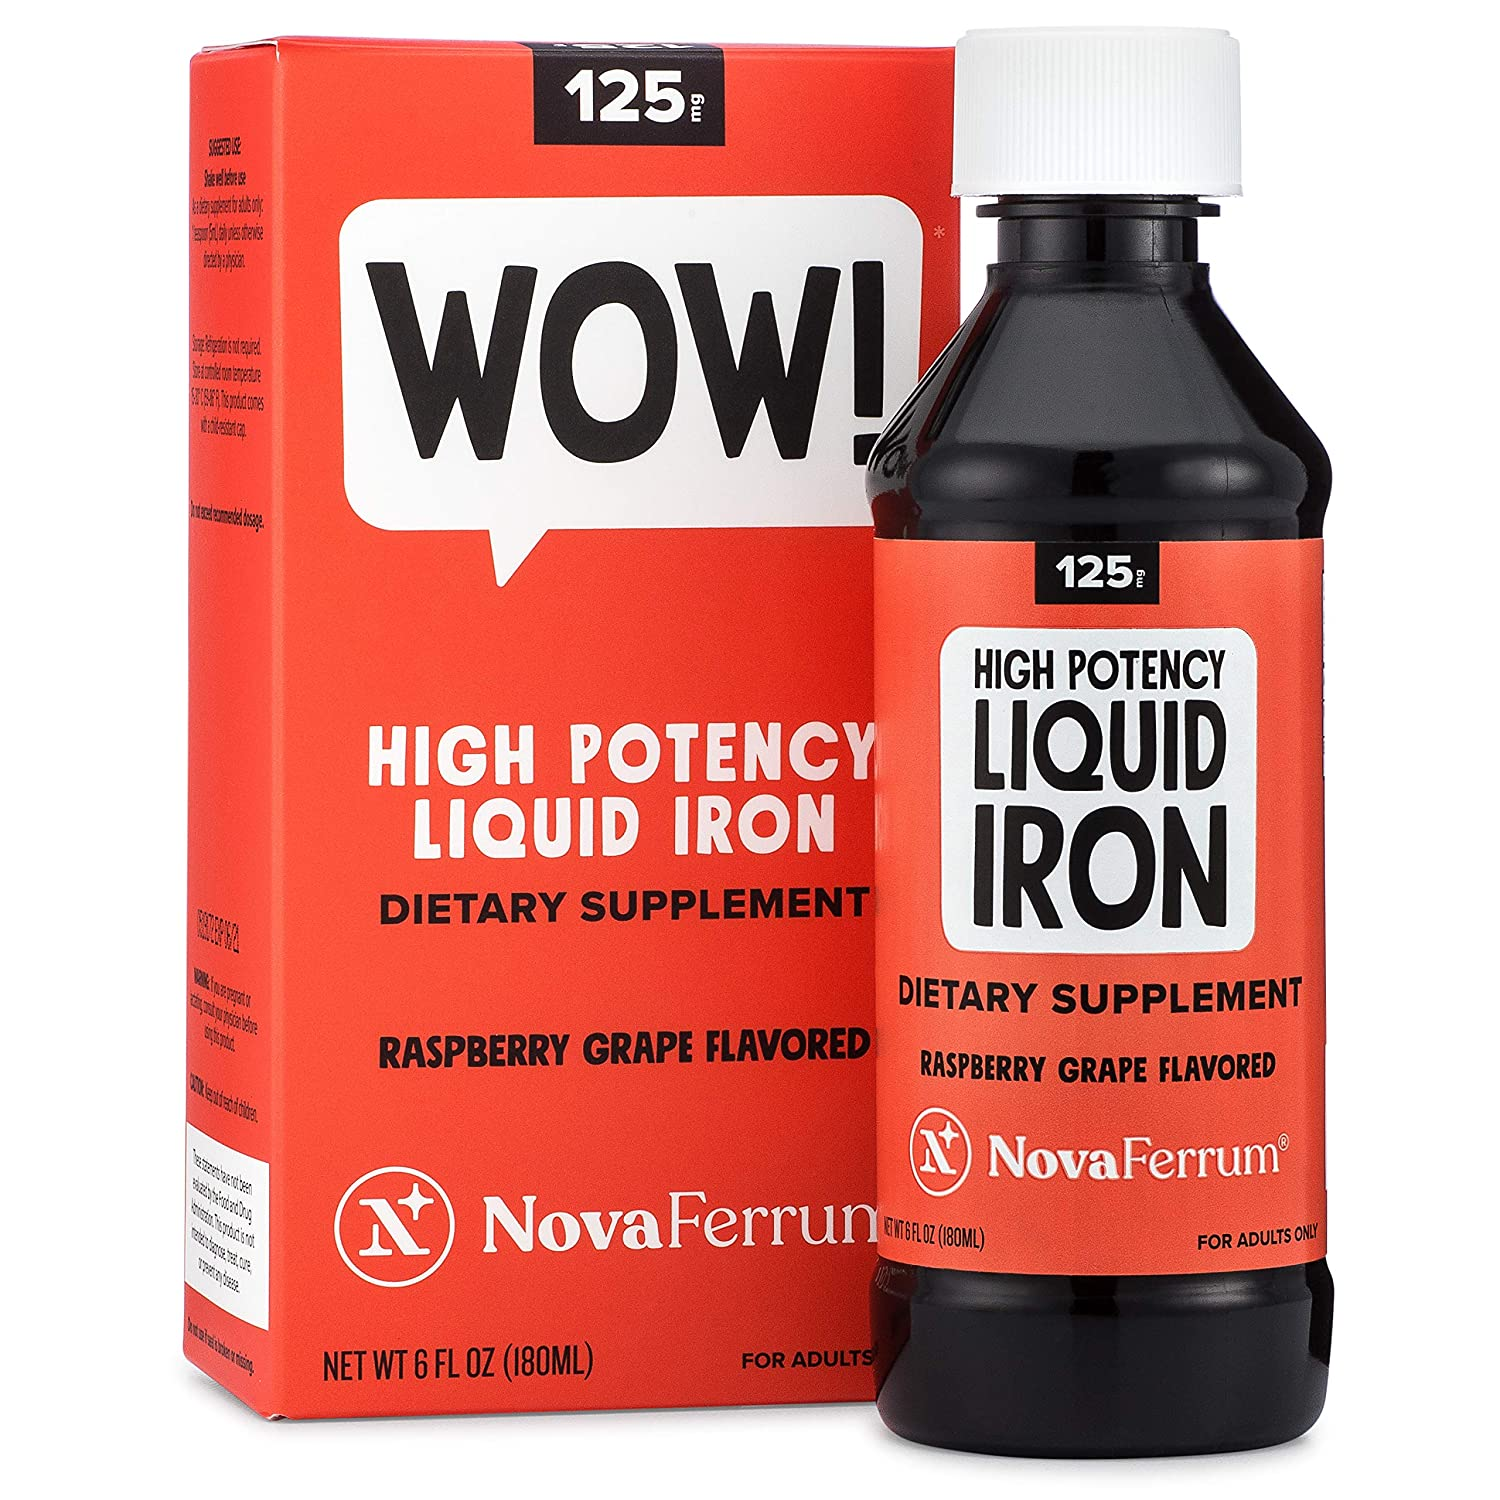 NovaFerrum 125 Liquid Iron Supplement Raspberry Grape Flavor 6 fl oz